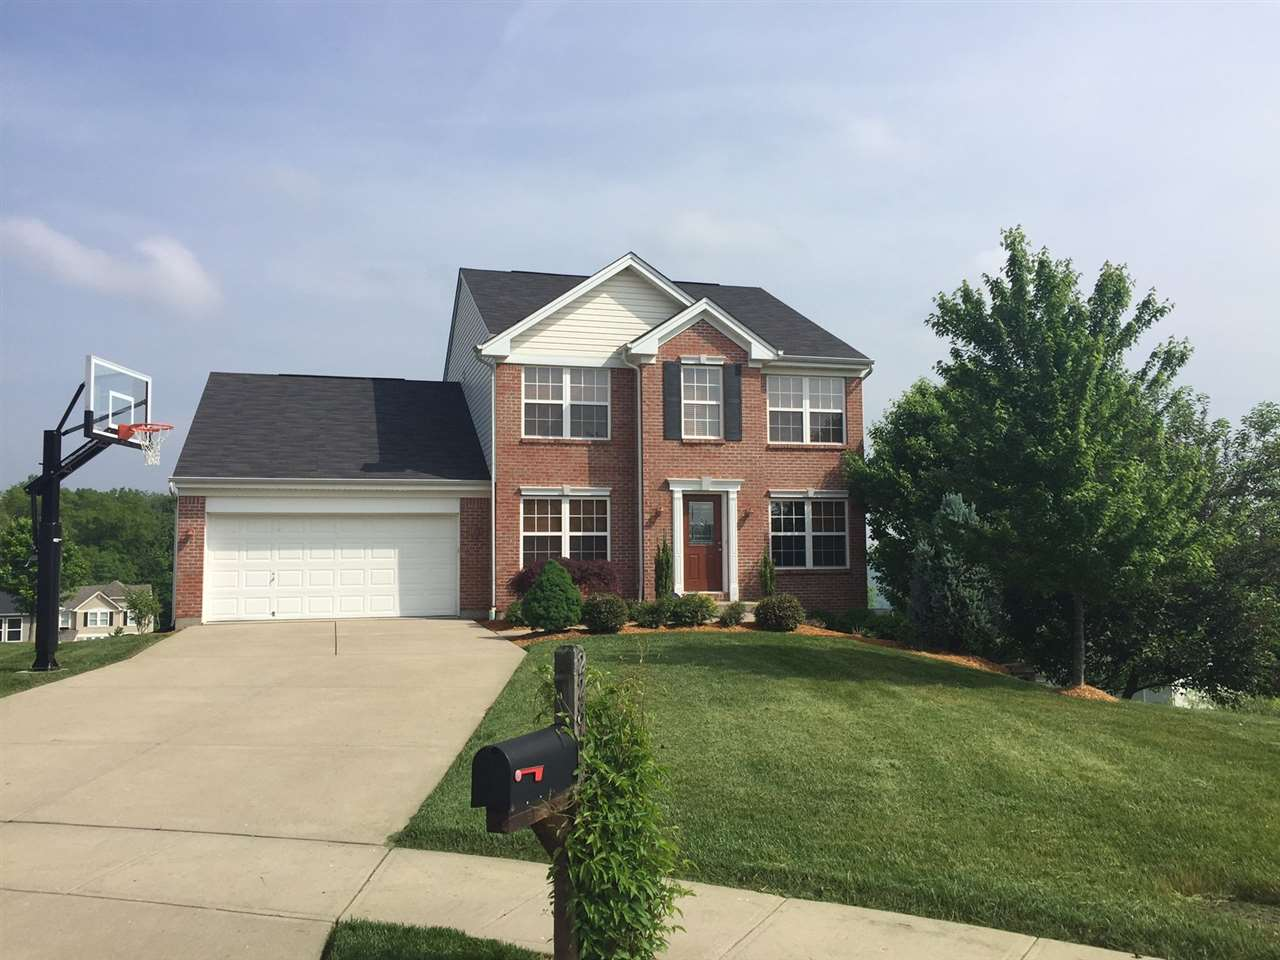 Photo 1 for 2281 Peak Ct Hebron, KY 41048